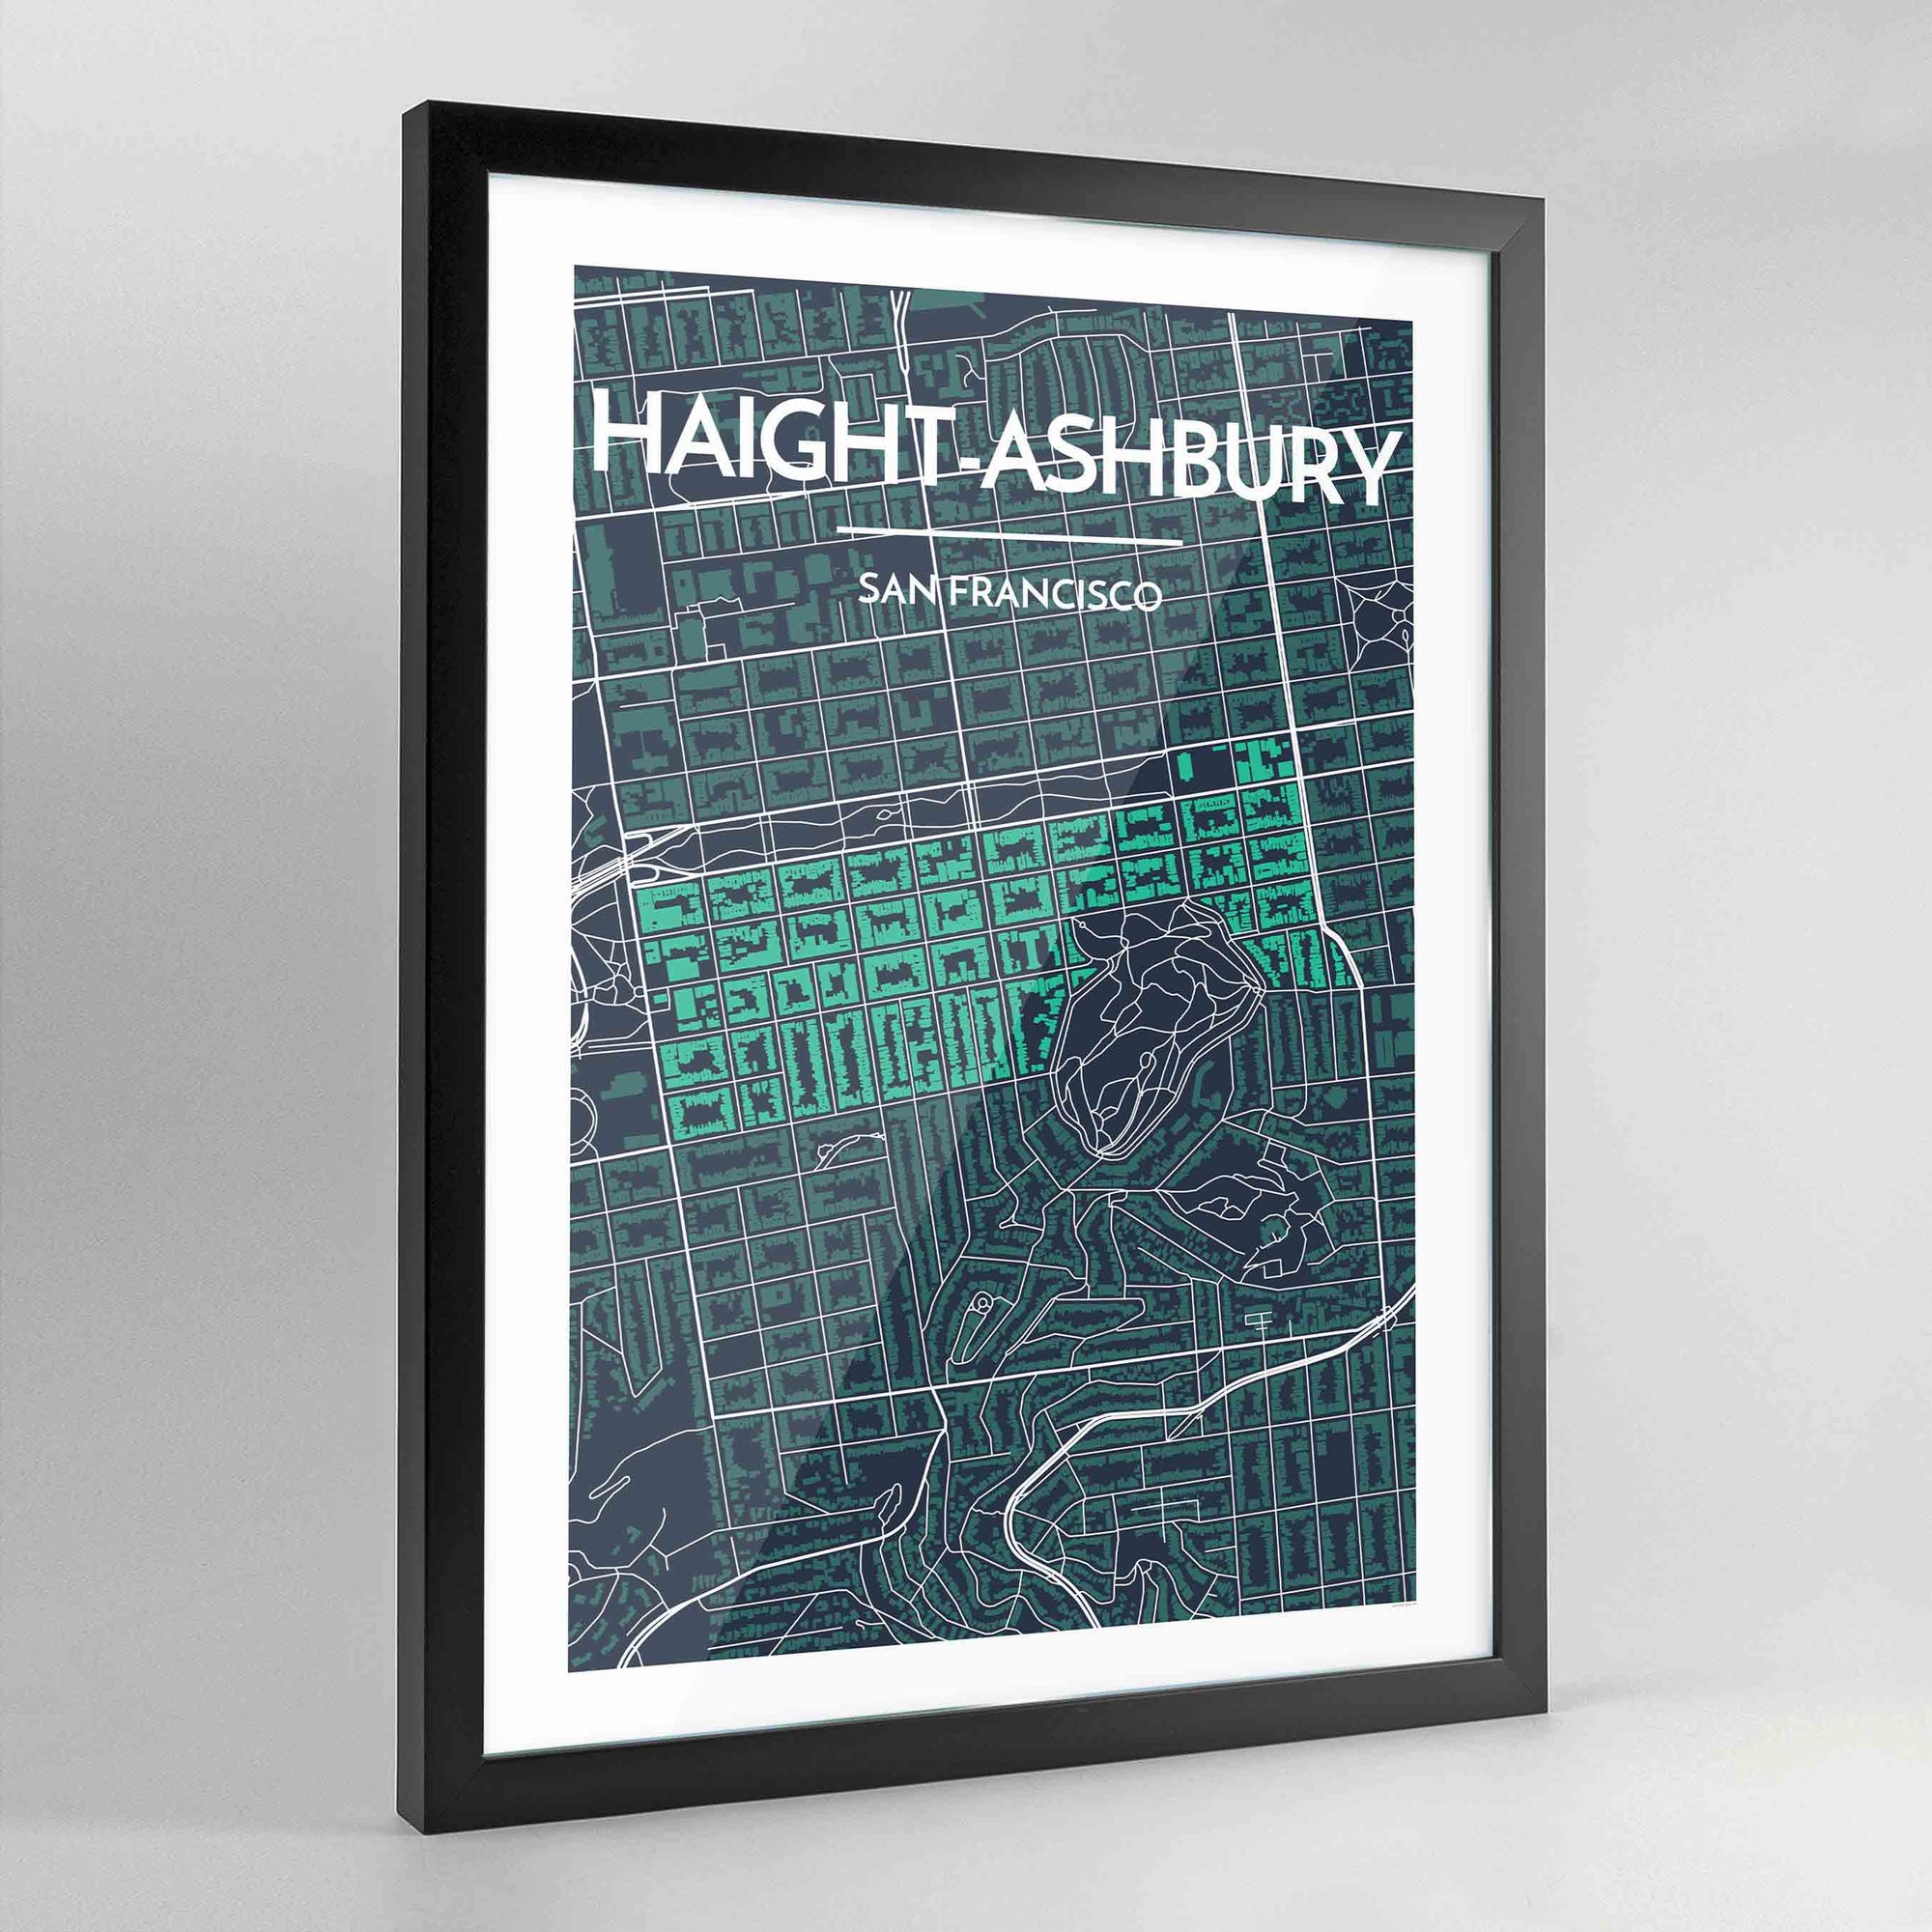 Framed Haight-Ashbury San Francisco City Map Art Print - Point Two Design